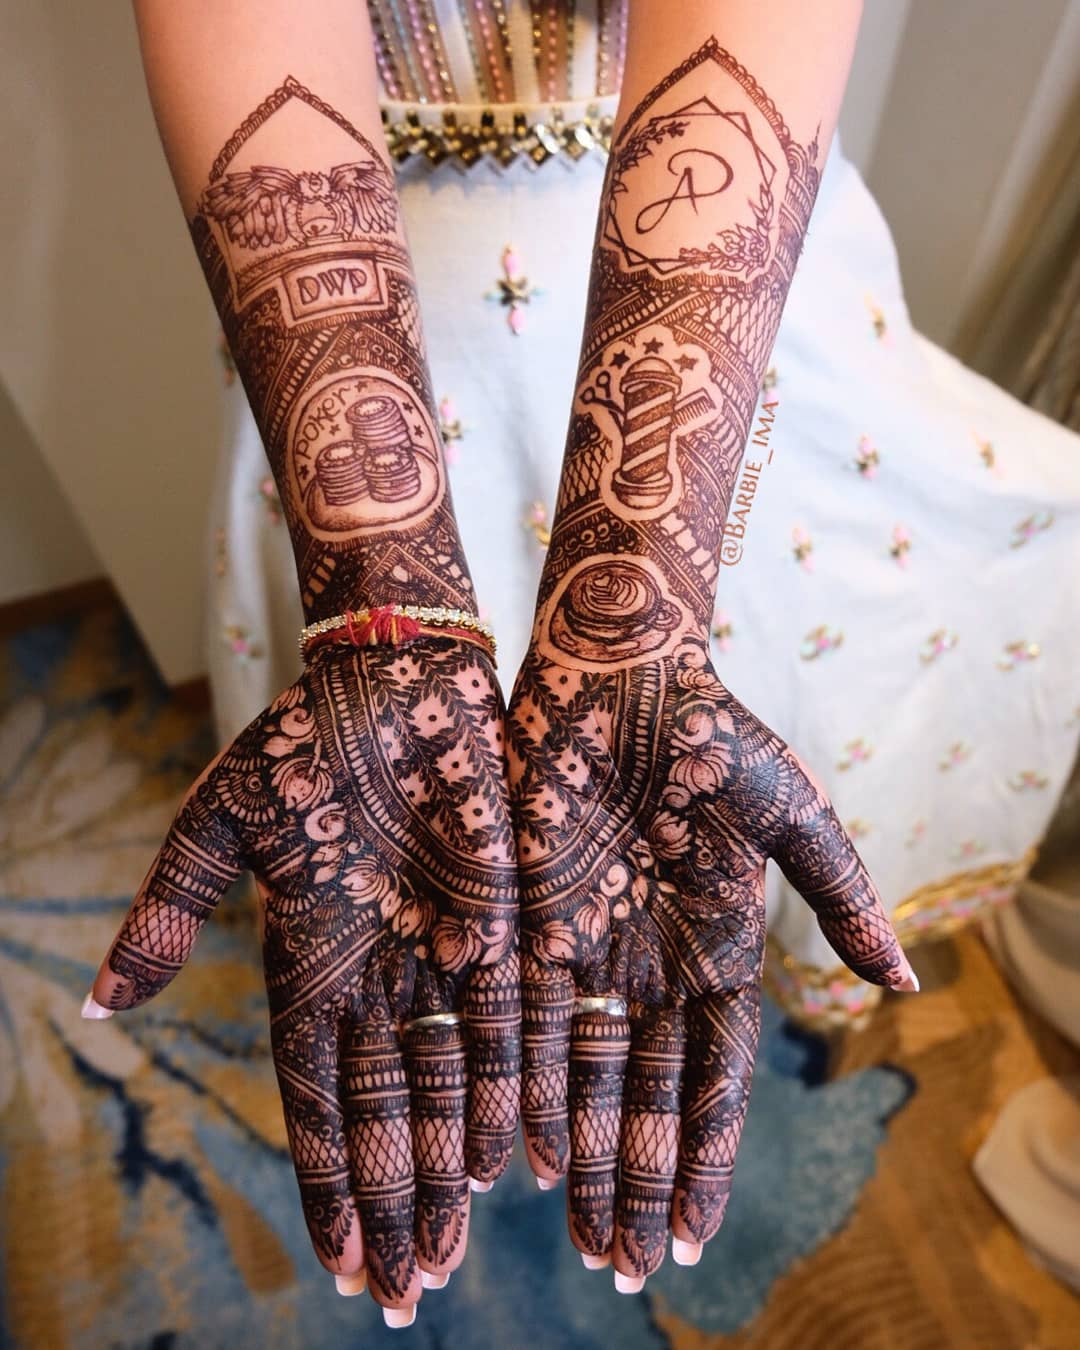 Henna Mehndi Tattoo Designs Idea For Wrist: 35+ Modern Bridal Mehndi Design Ideas For Your 2018 Wedding